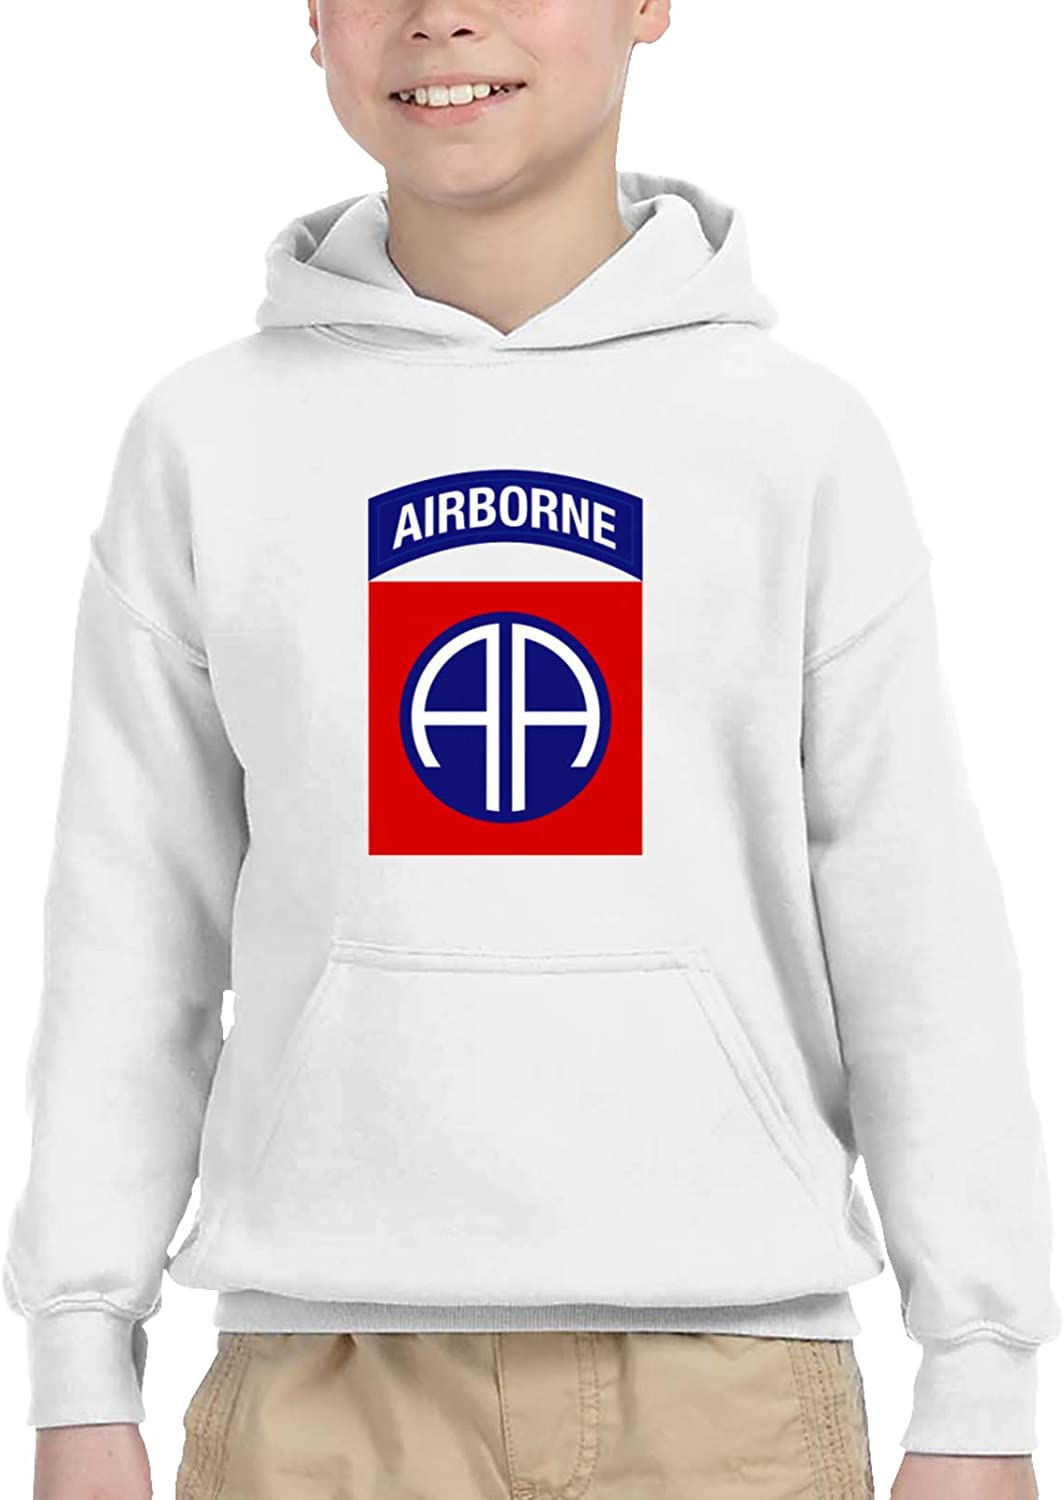 Army 82nd Airborne Division Teen Hooded Sweater Casual Hoodie For Baby Boys Girls